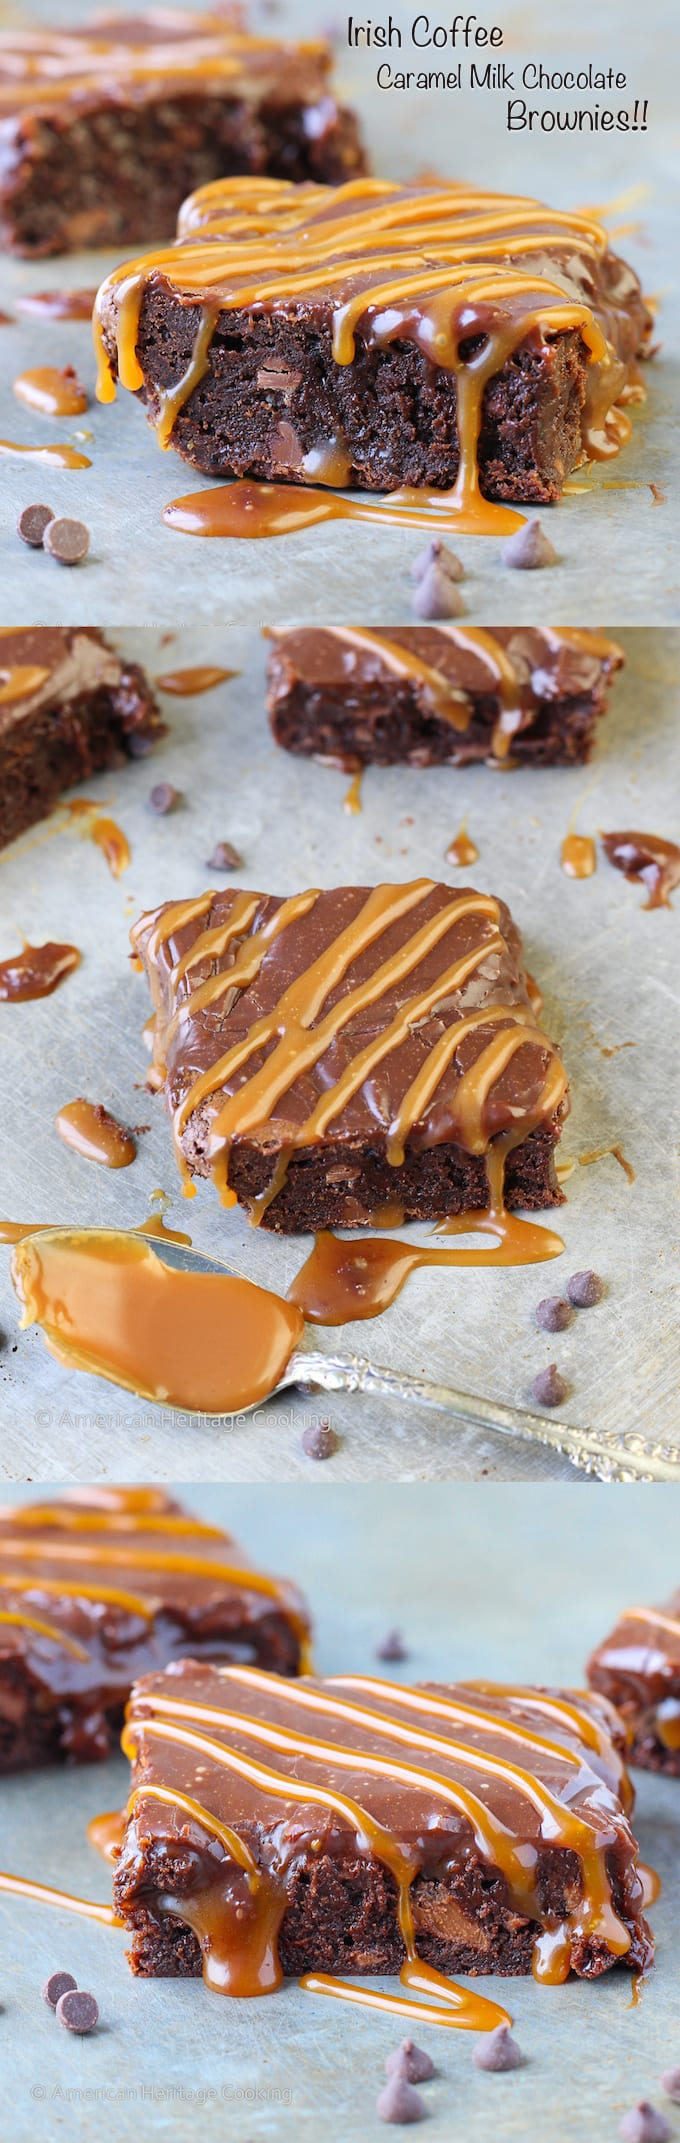 This Bailey's Irish Coffee Caramel Milk Chocolate Brownie is a decadent, fudgy double chocolate coffee brownie with salted caramel inside and drizzled on top of the Bailey's ganache!